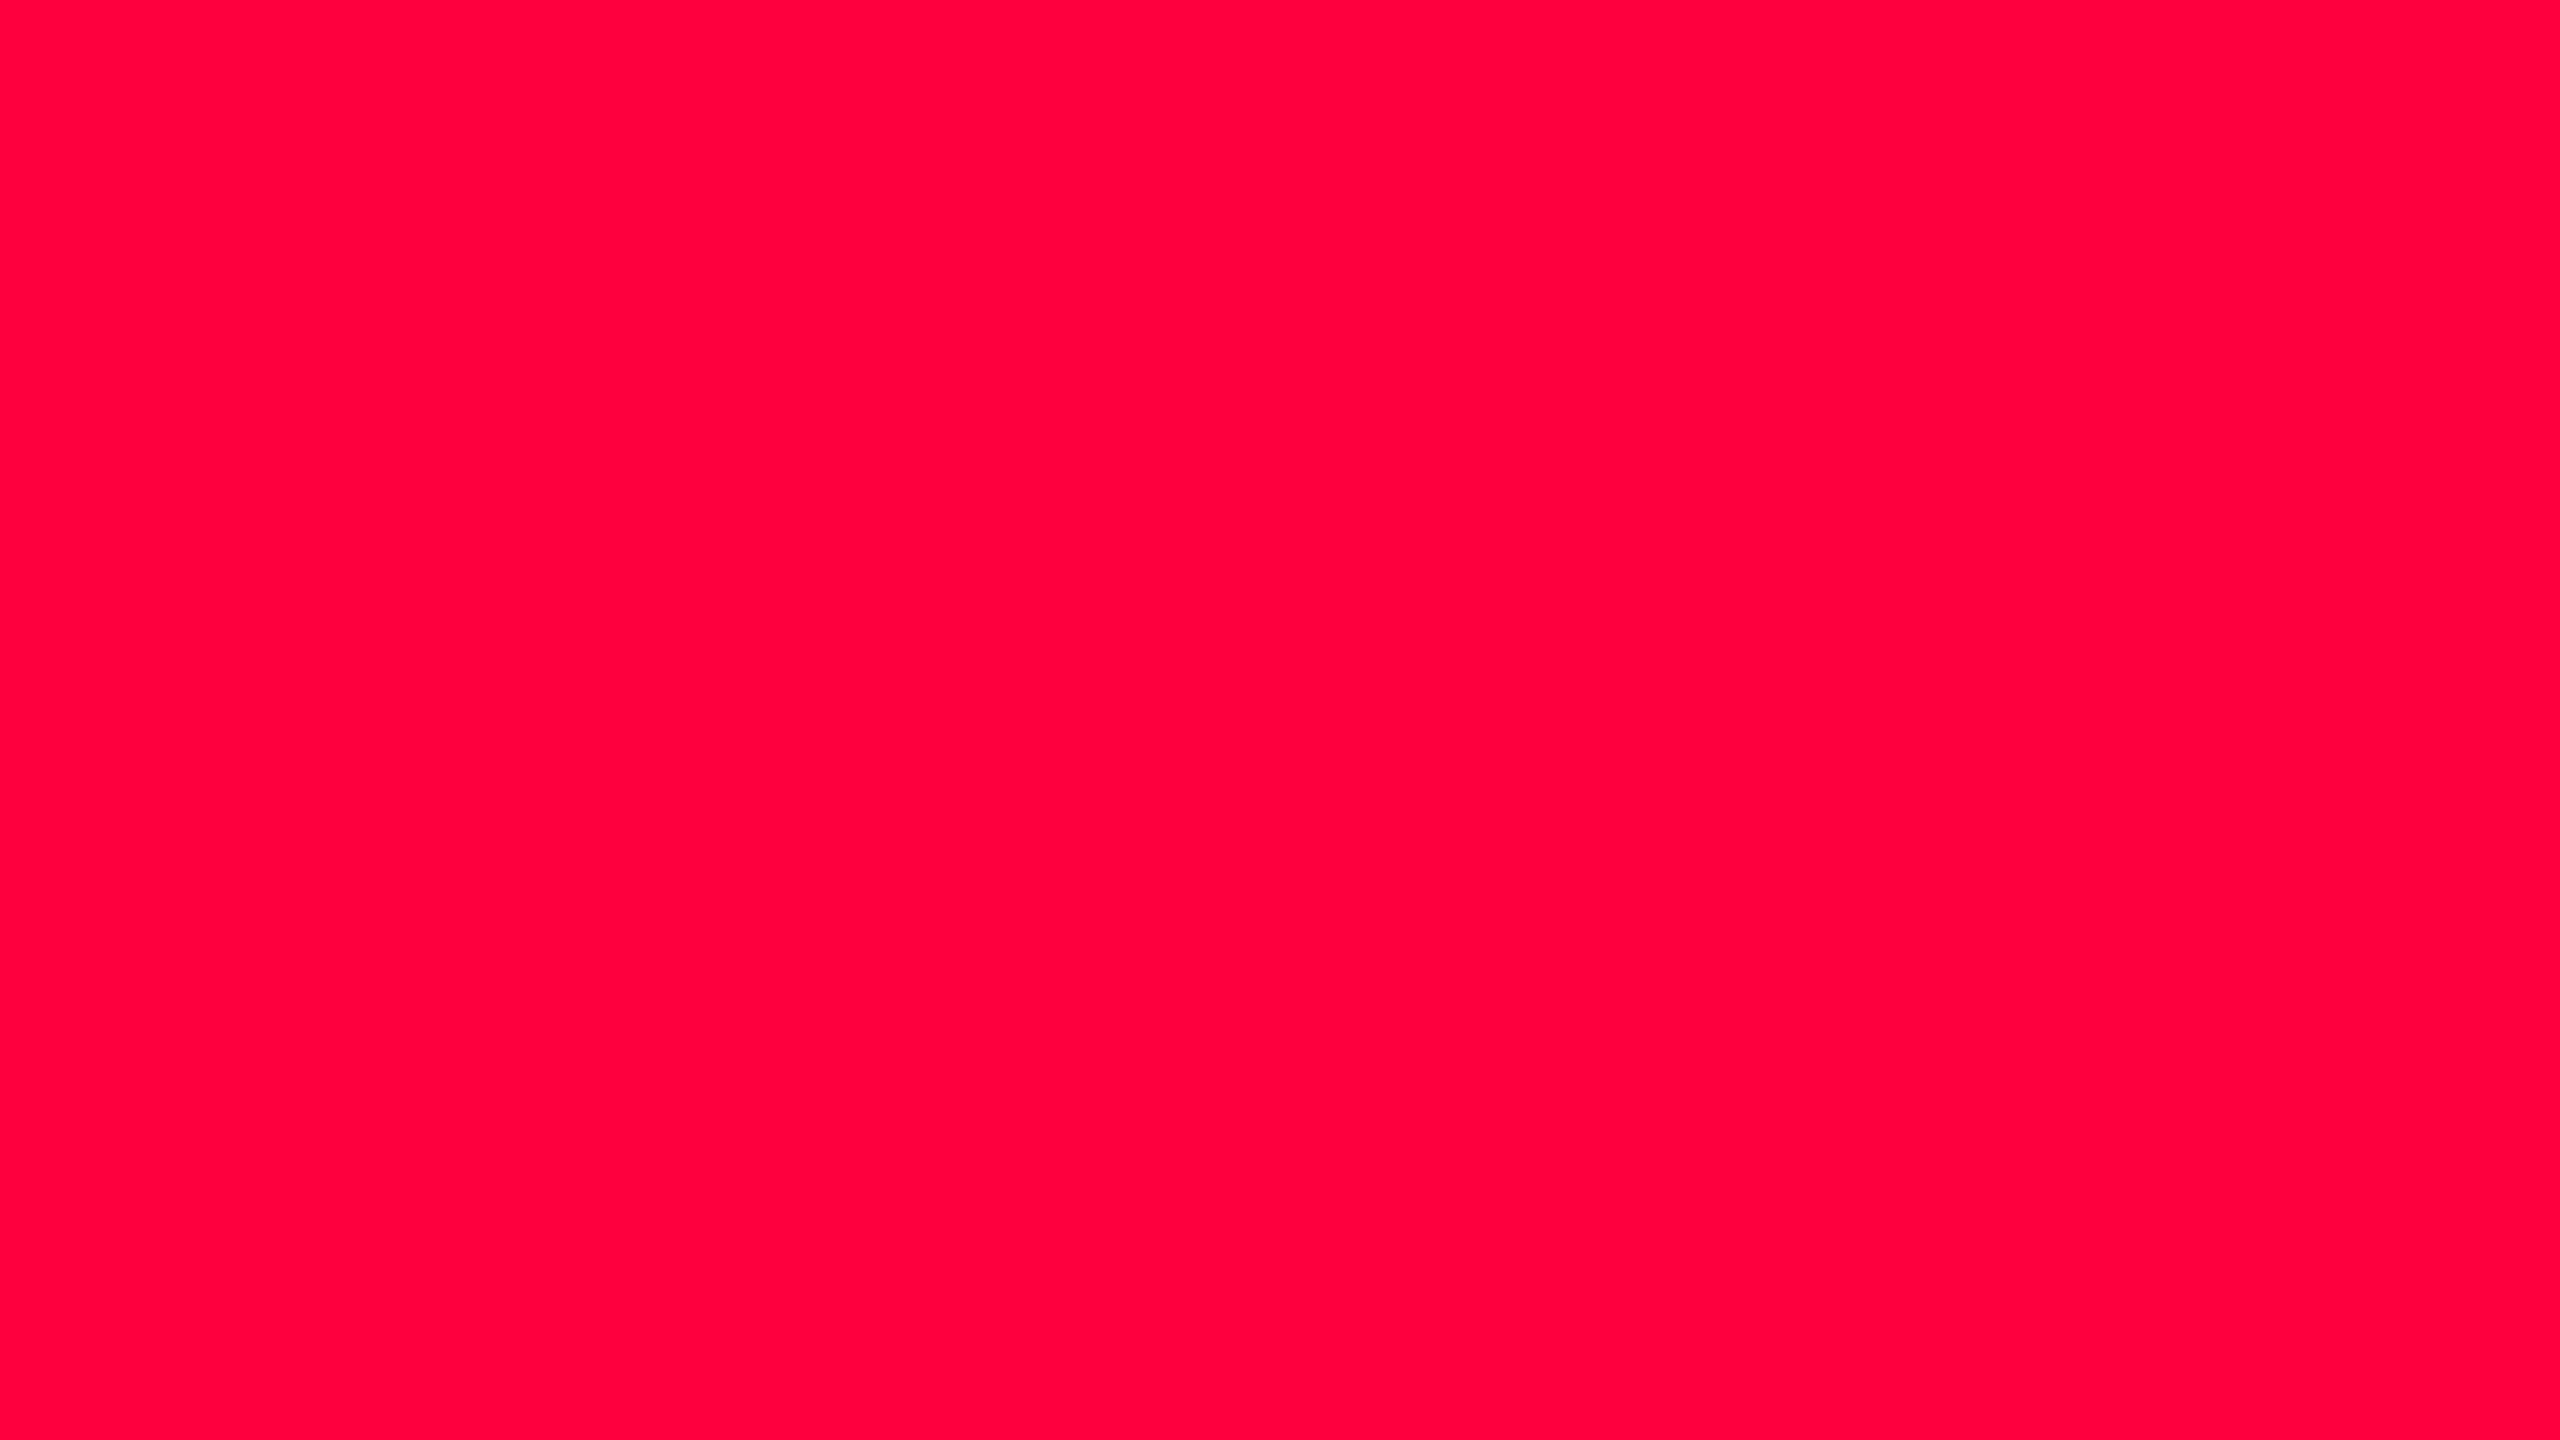 2560x1440 Electric Crimson Solid Color Background